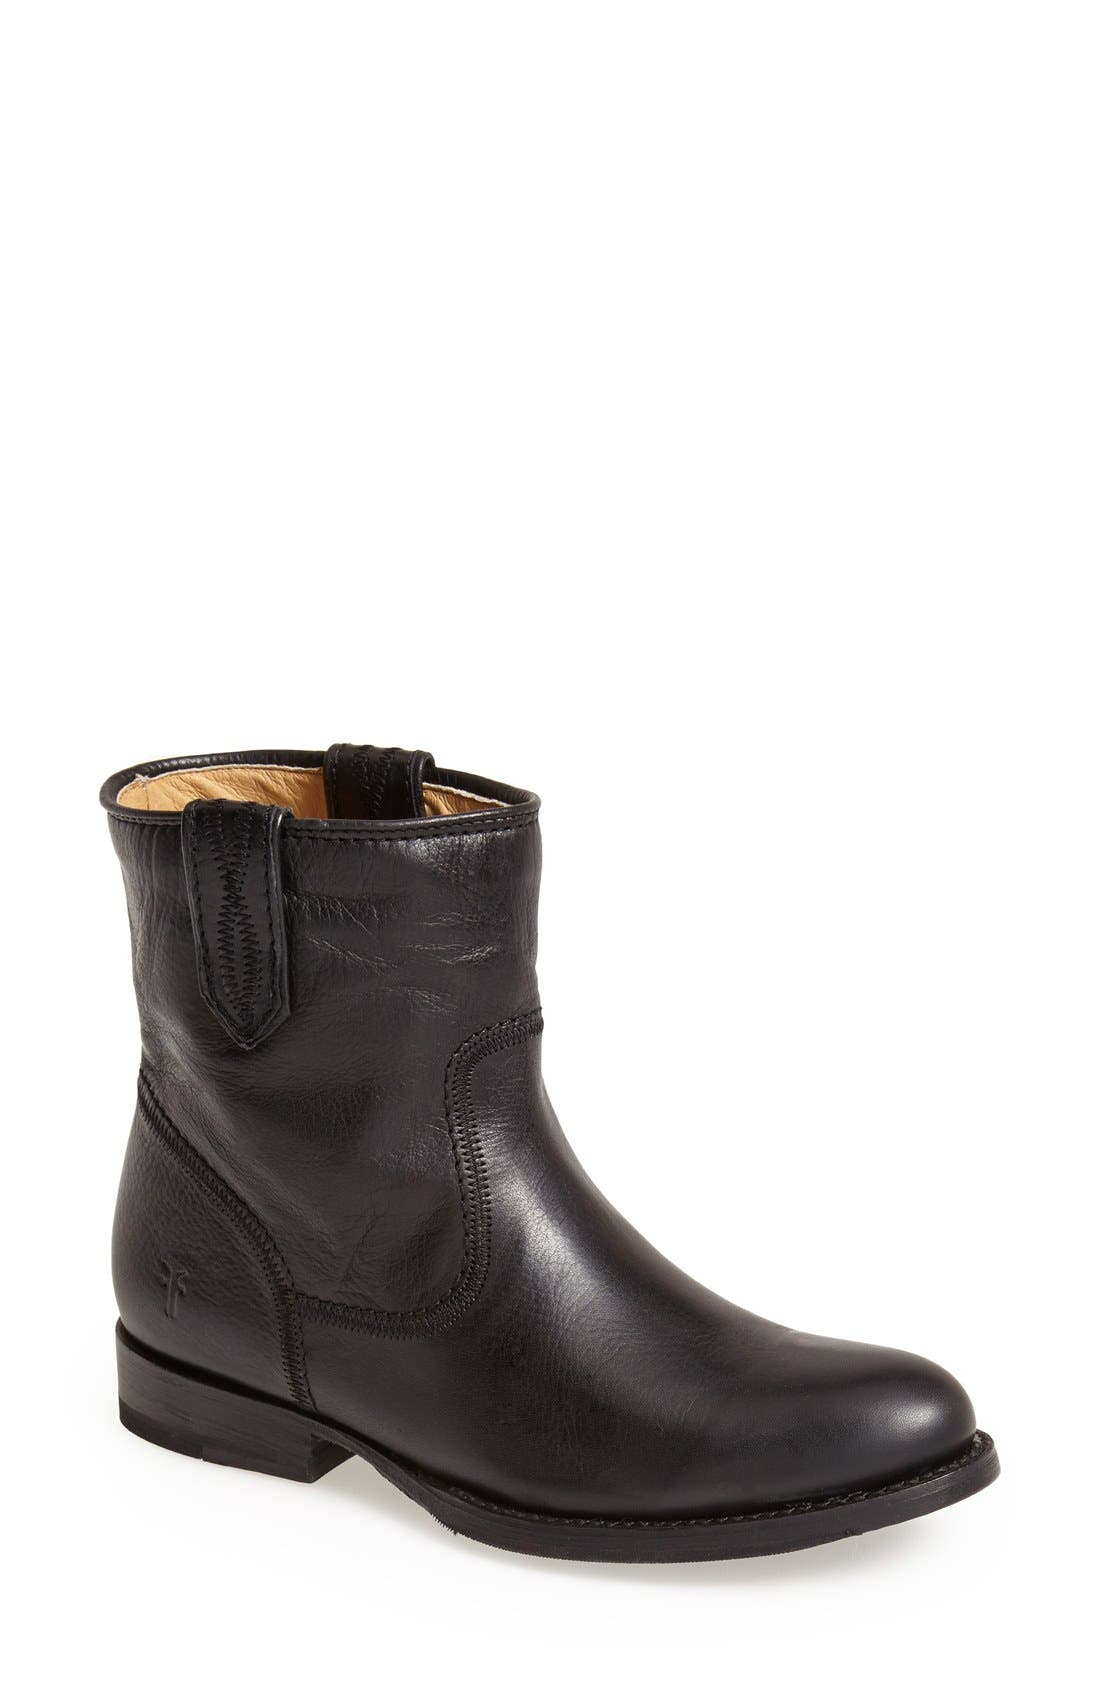 Alternate Image 1 Selected - Frye 'Jamie' Short Boot (Women)